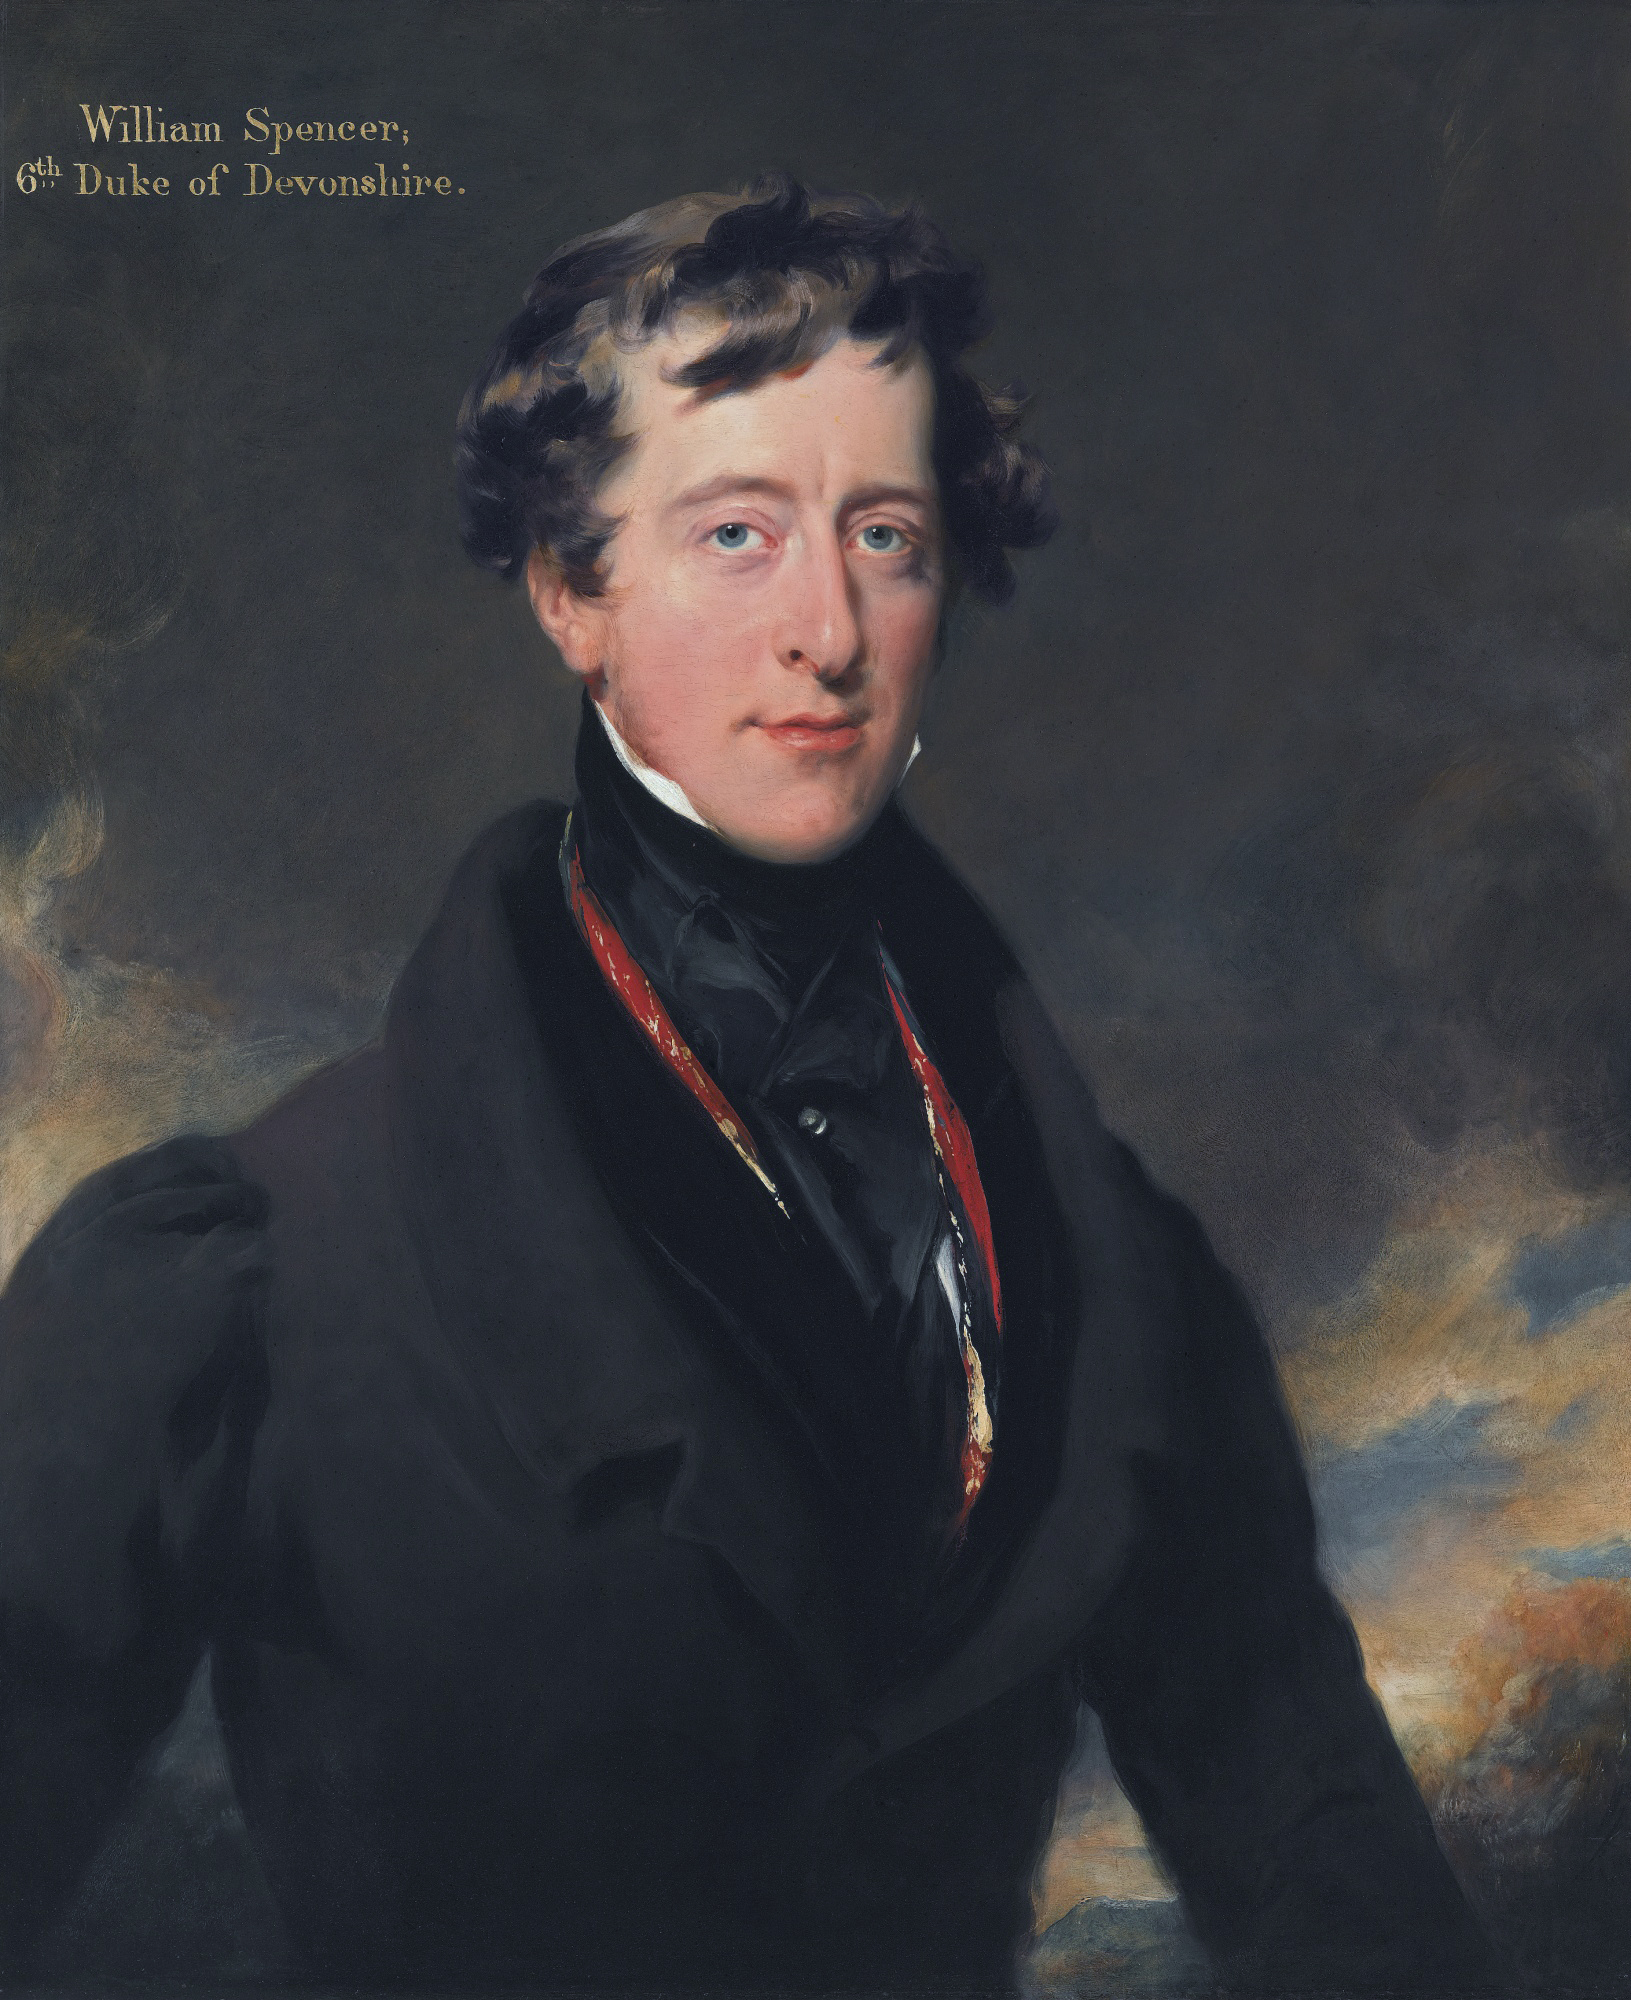 William Spencer. Cavendish, 6th Duke of Devonshire, by Thomas Lawrence. Уильям Спенсер Кэвендиш.